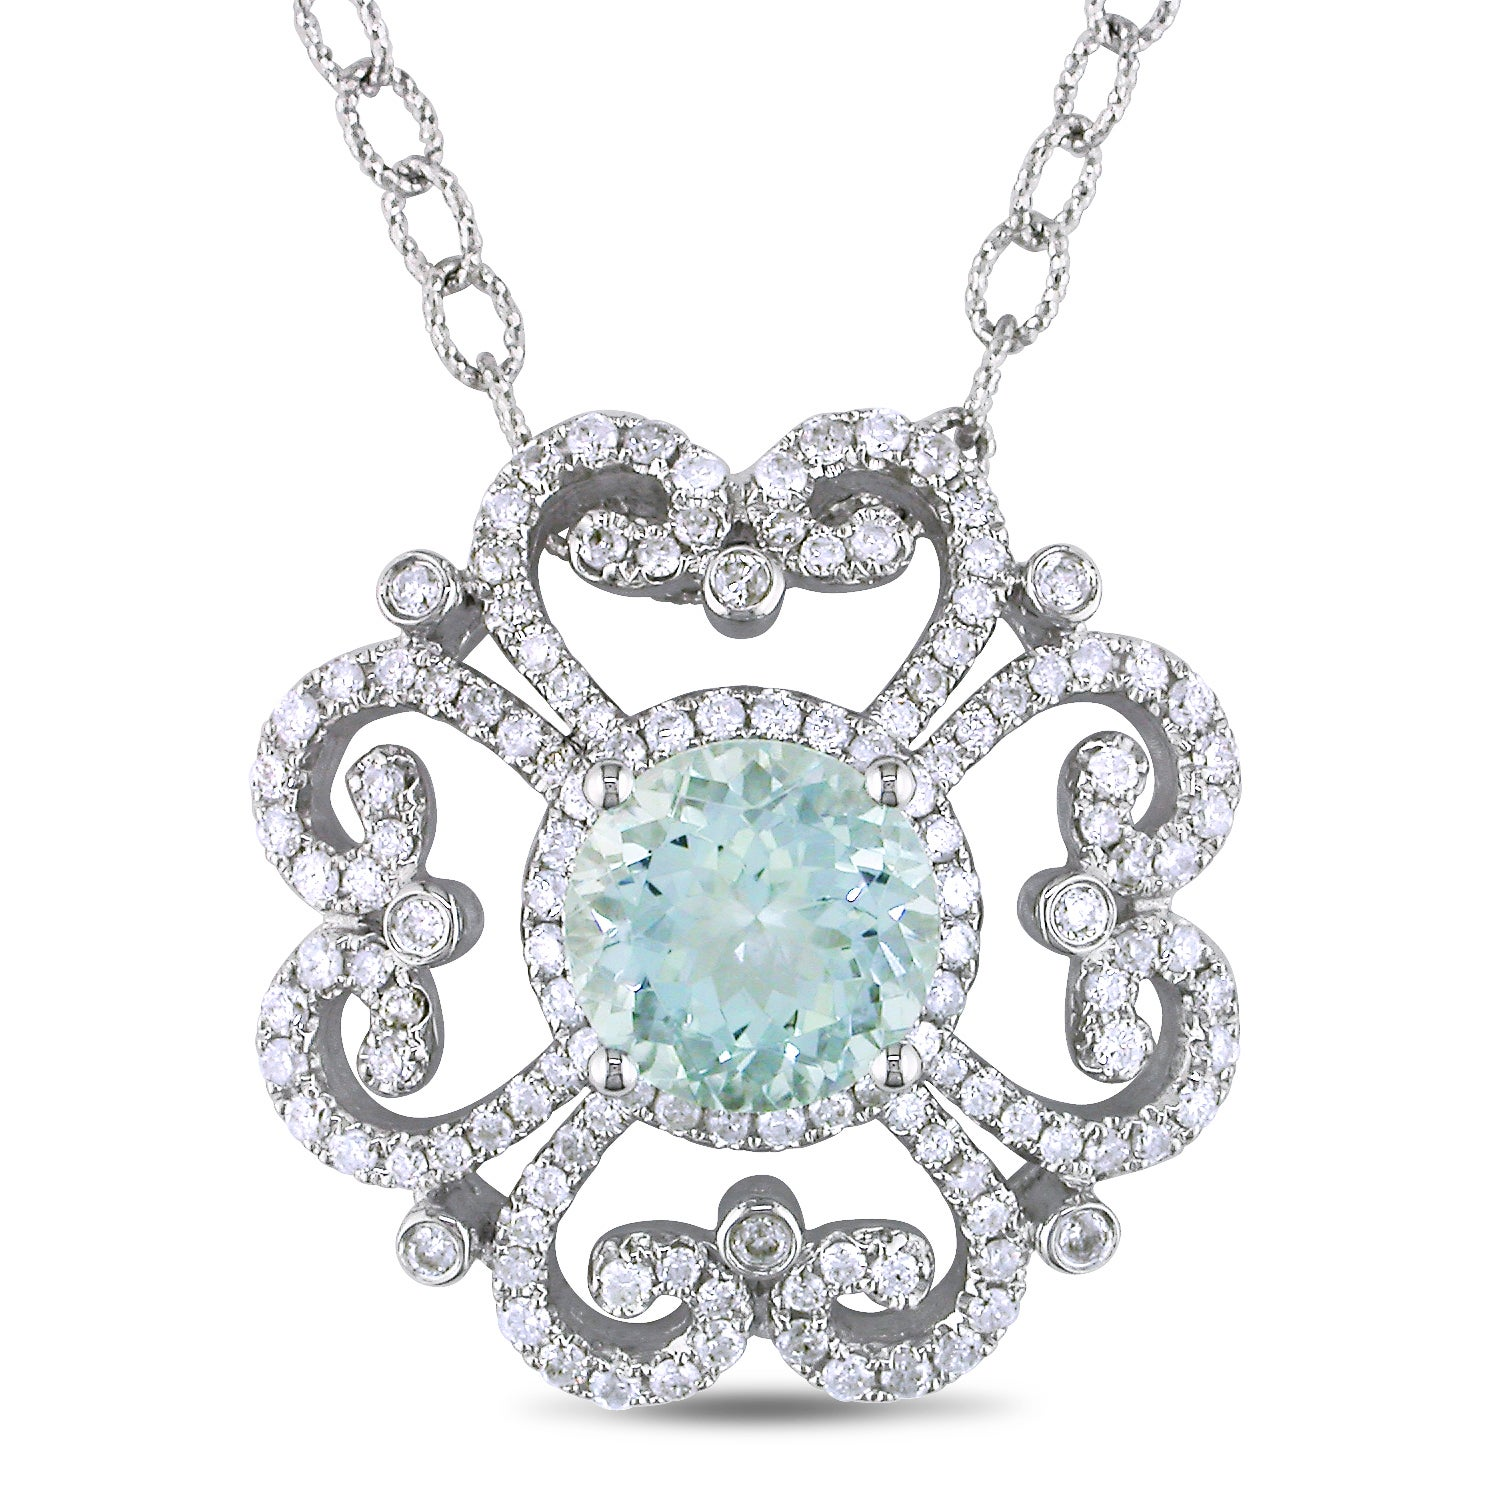 Miadora 14k White Gold 2-1/2ct Aquamarine and 1ct TDW Diamond Pendant (G-H, SI1-SI2)